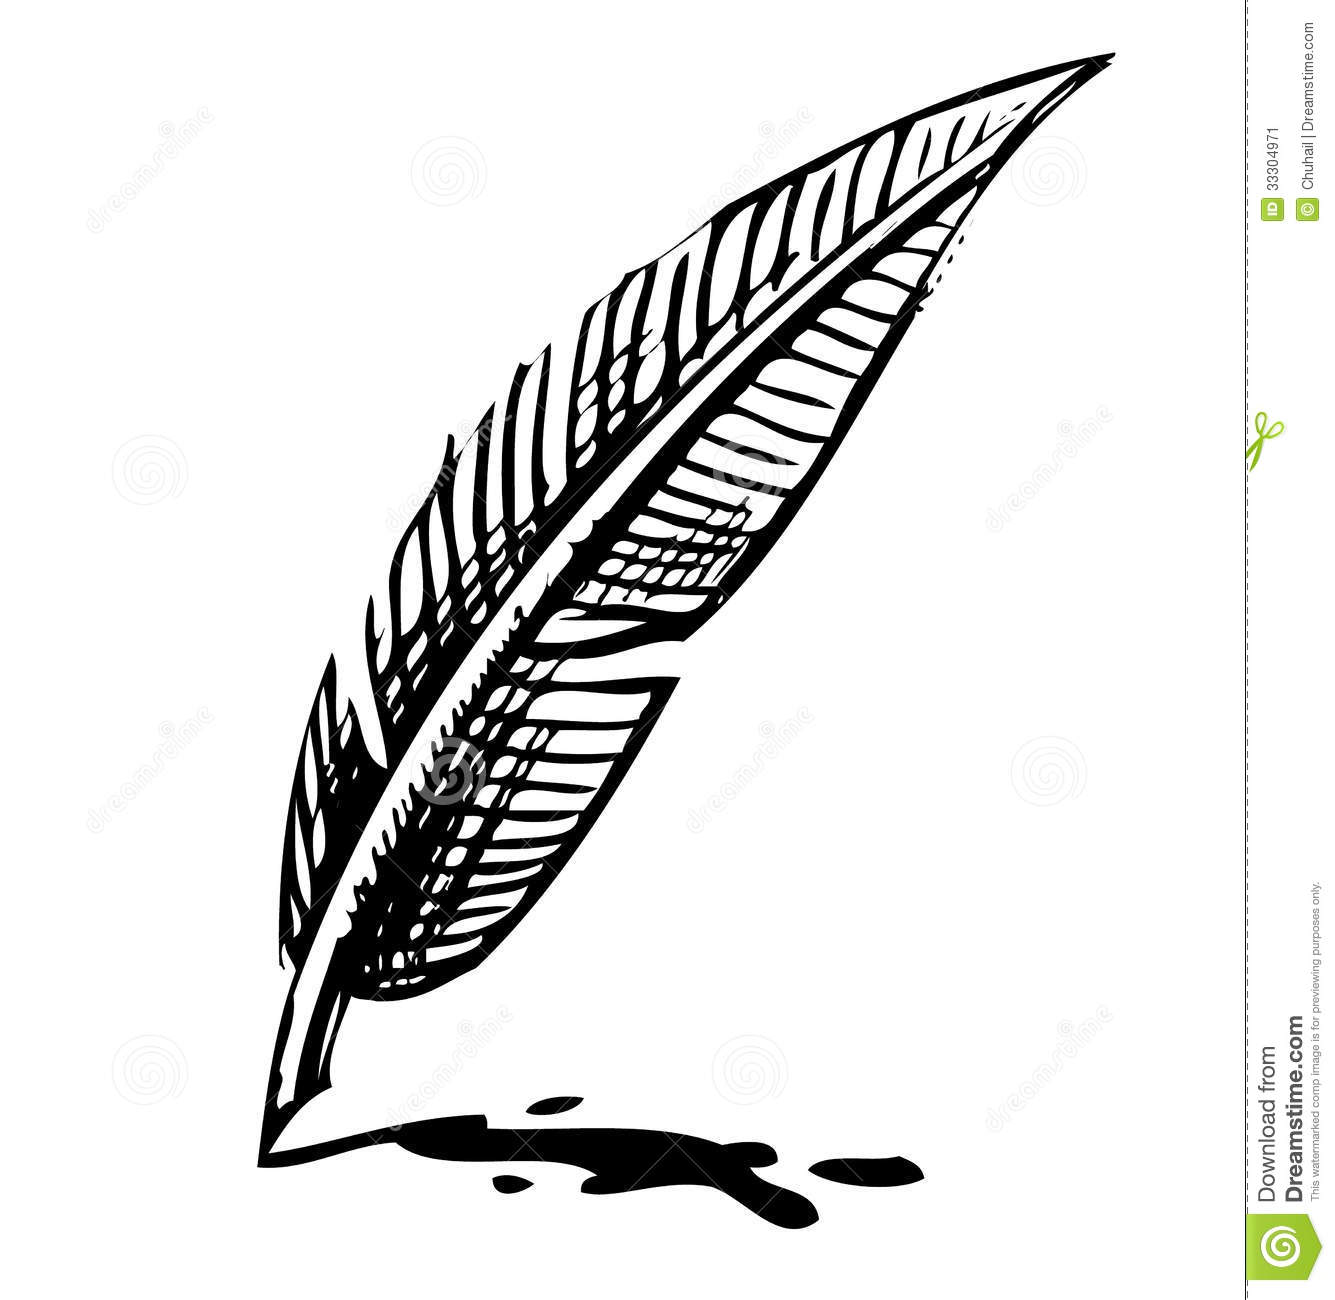 Quill clipart vintage #2